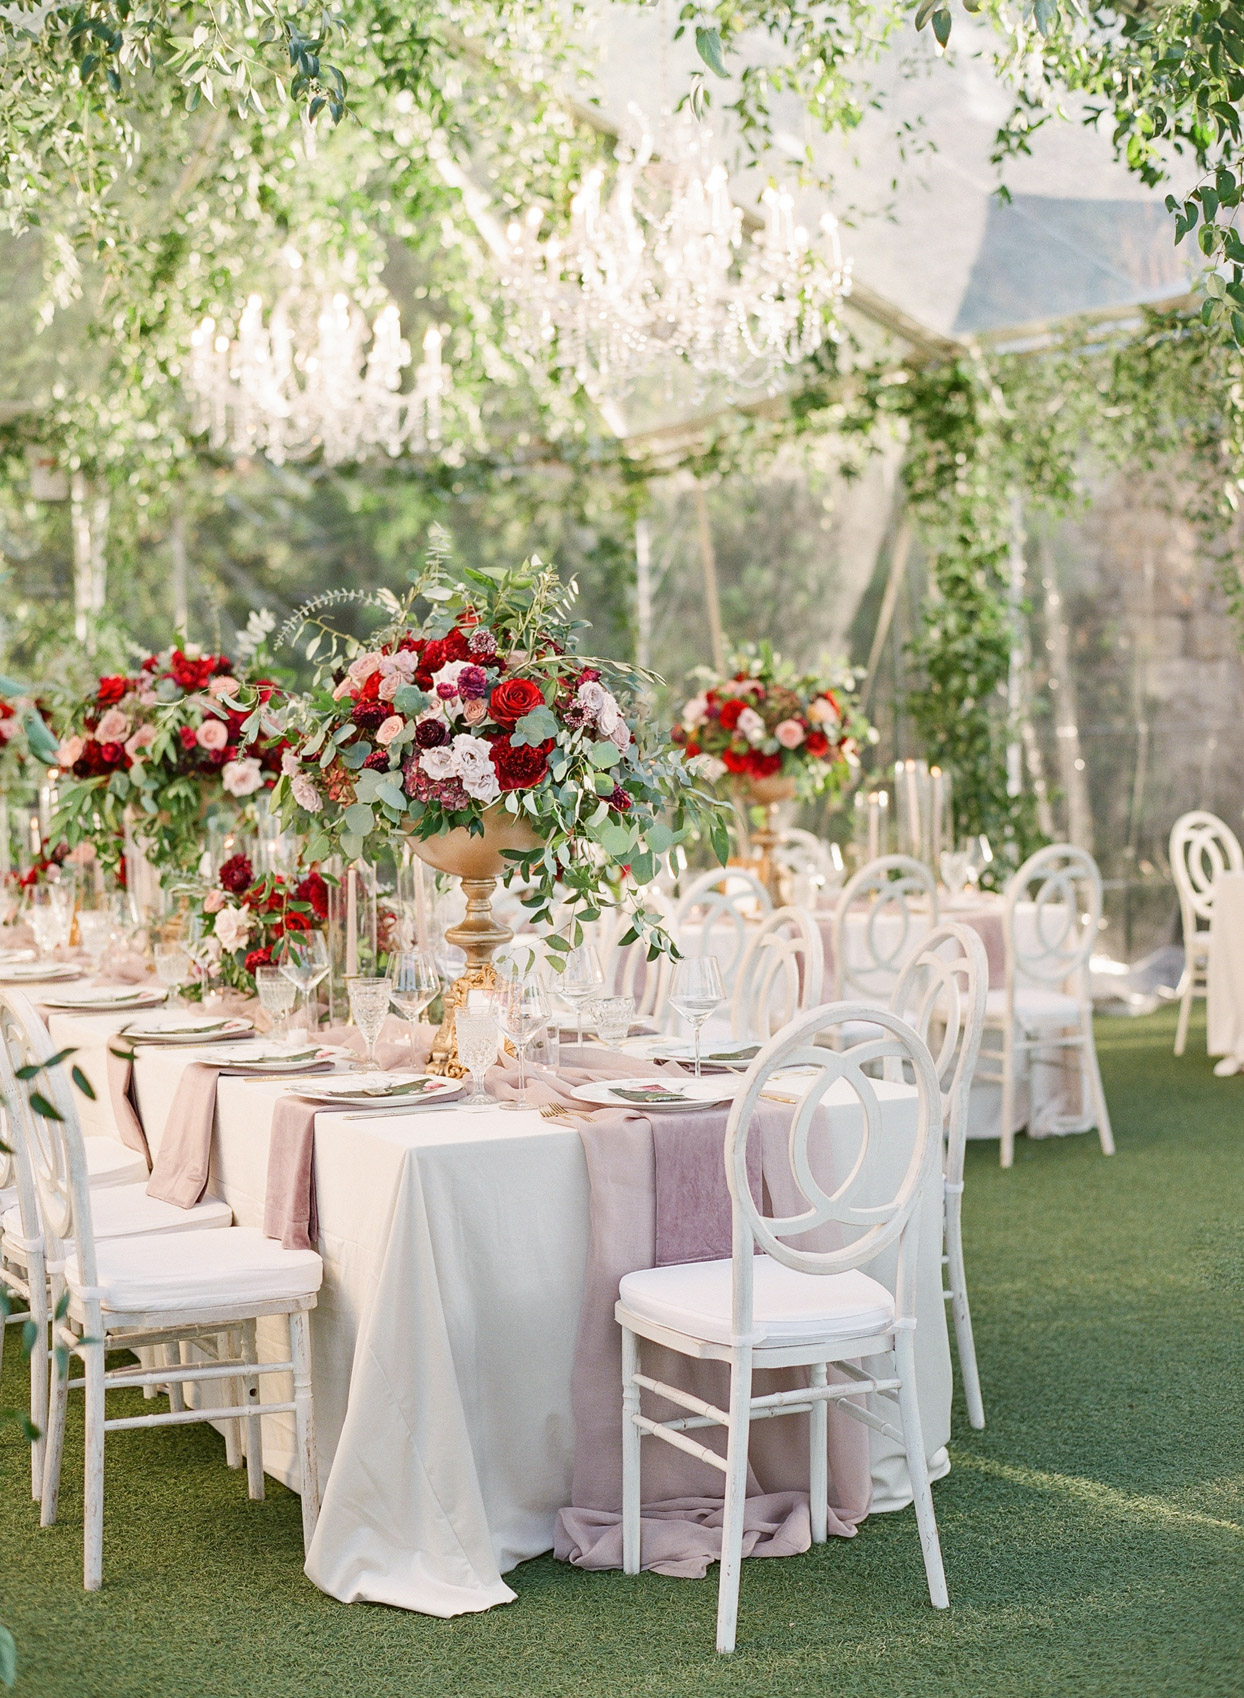 romantic white long tables with red floral centerpieces in wedding tent